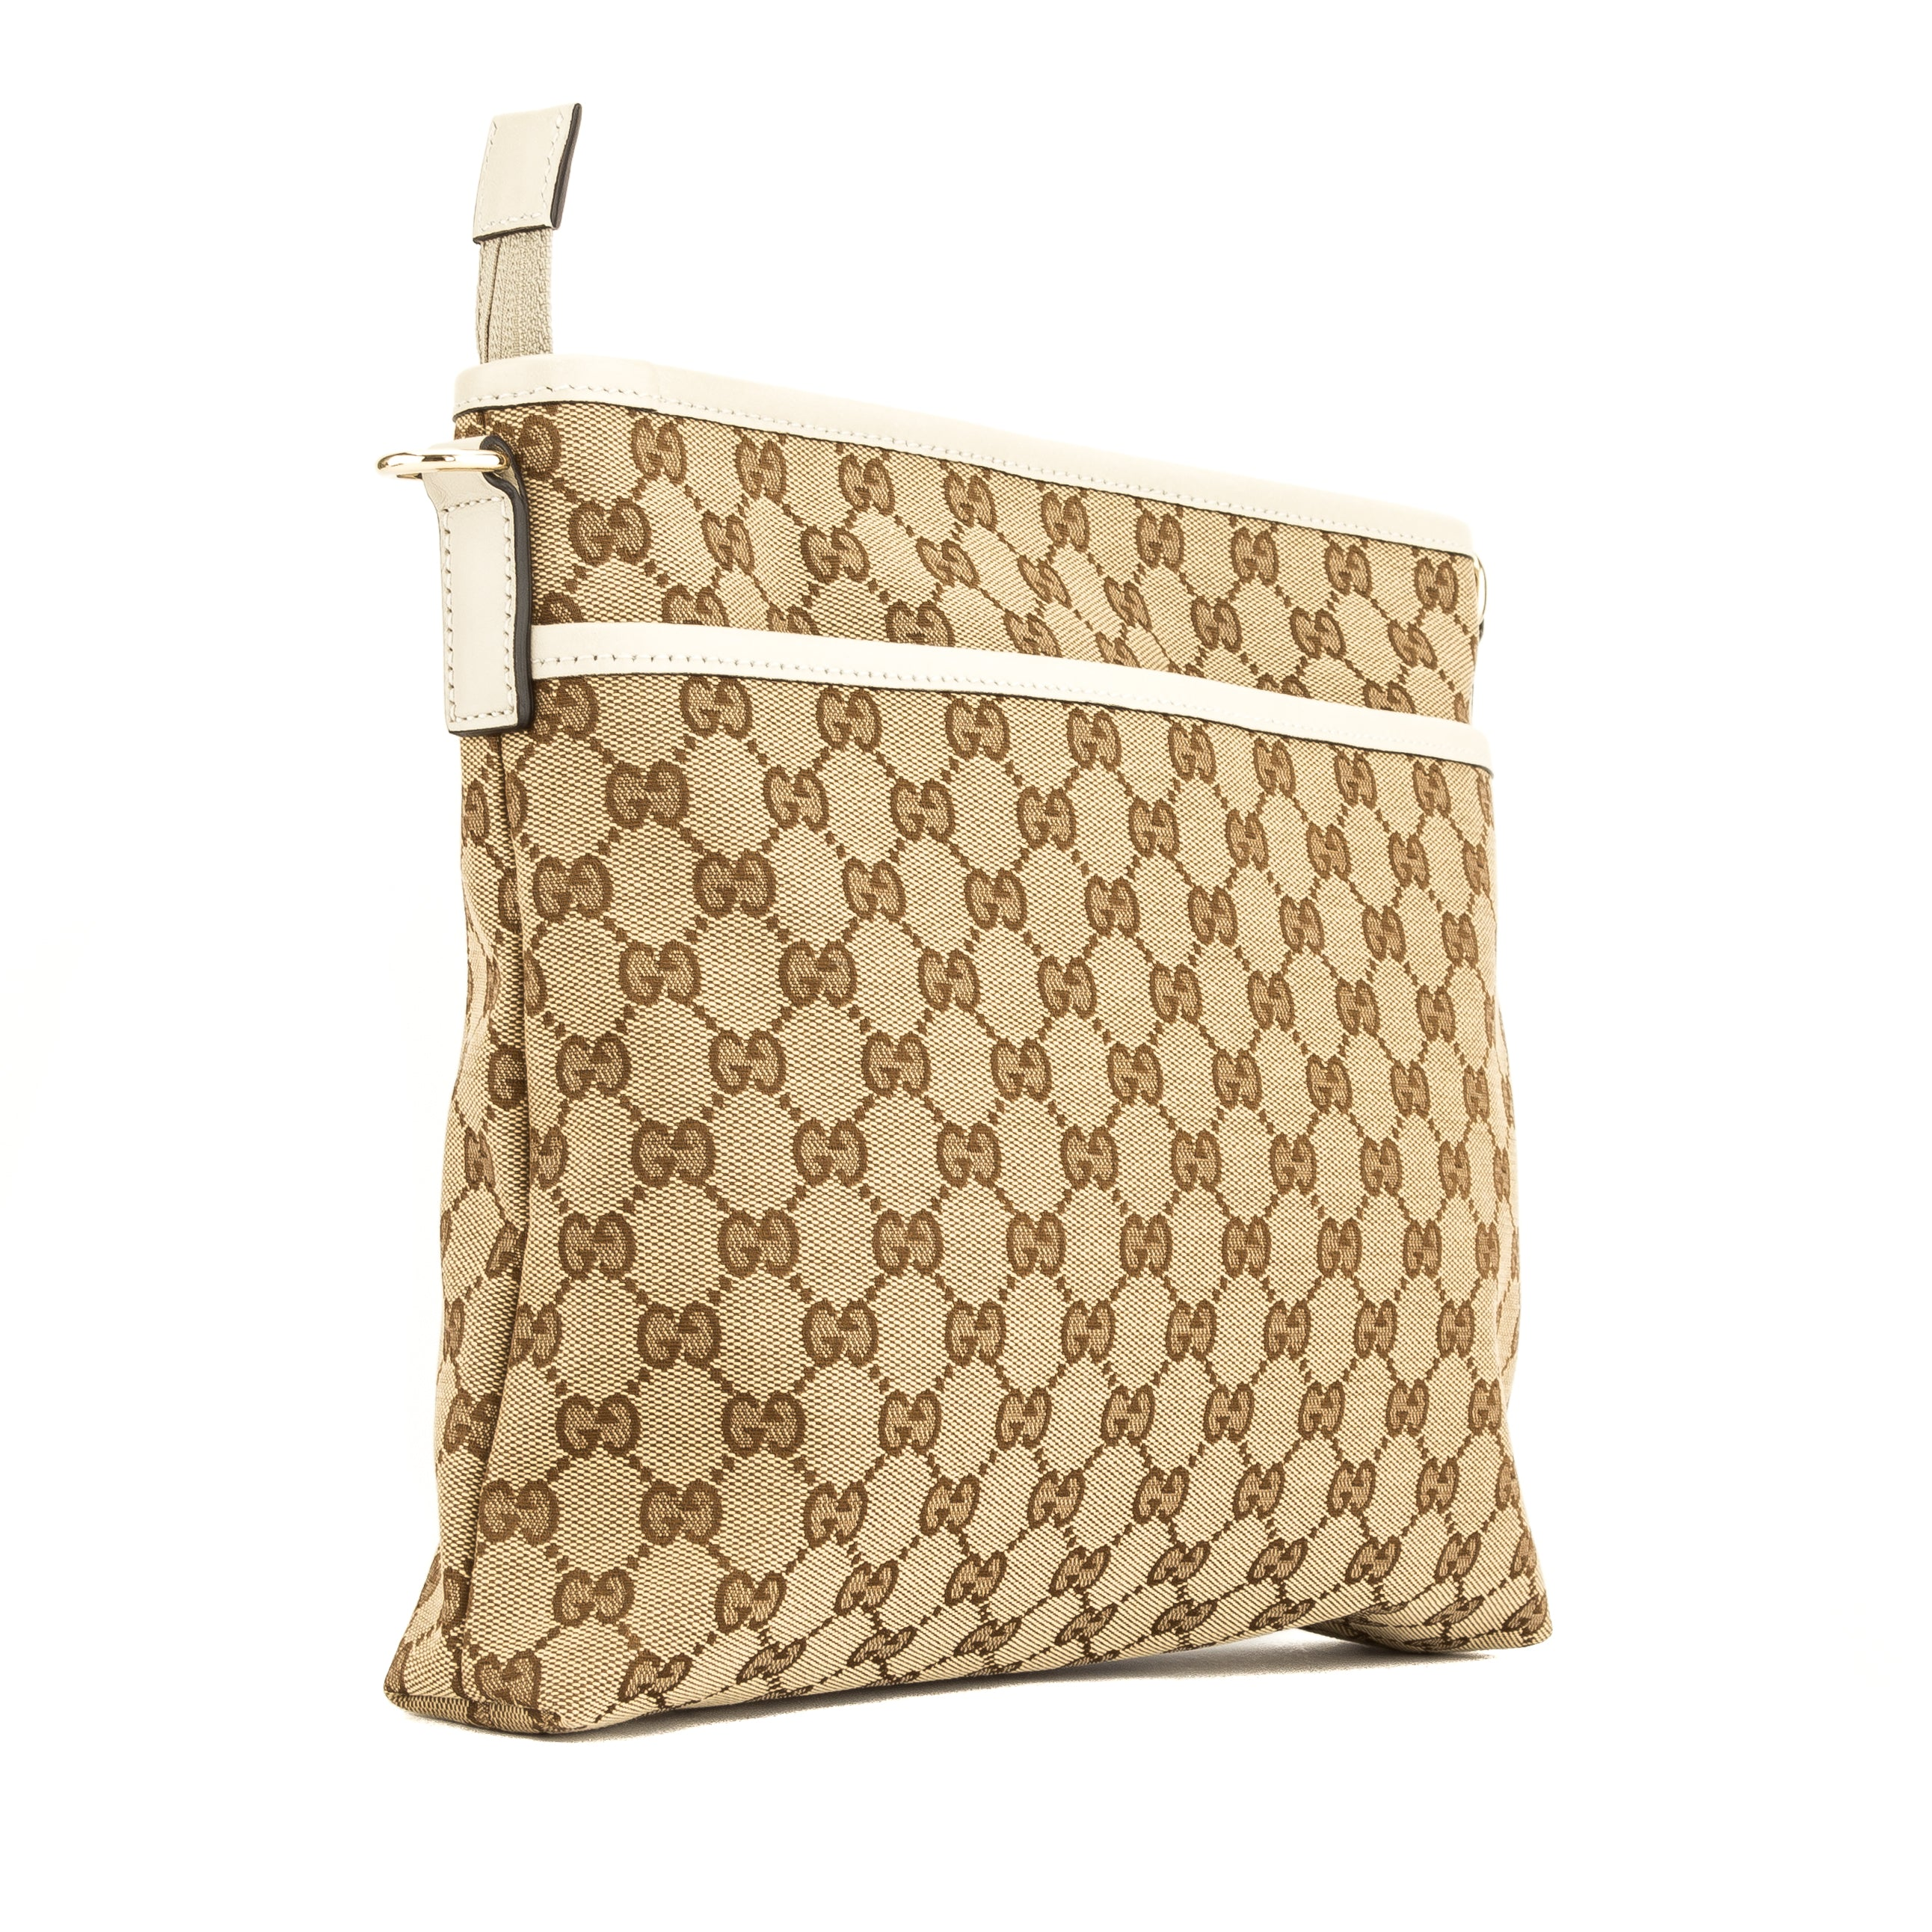 ceafce6f8f3 Gucci White Leather GG Monogram Canvas Shoulder Bag (4075040 ...